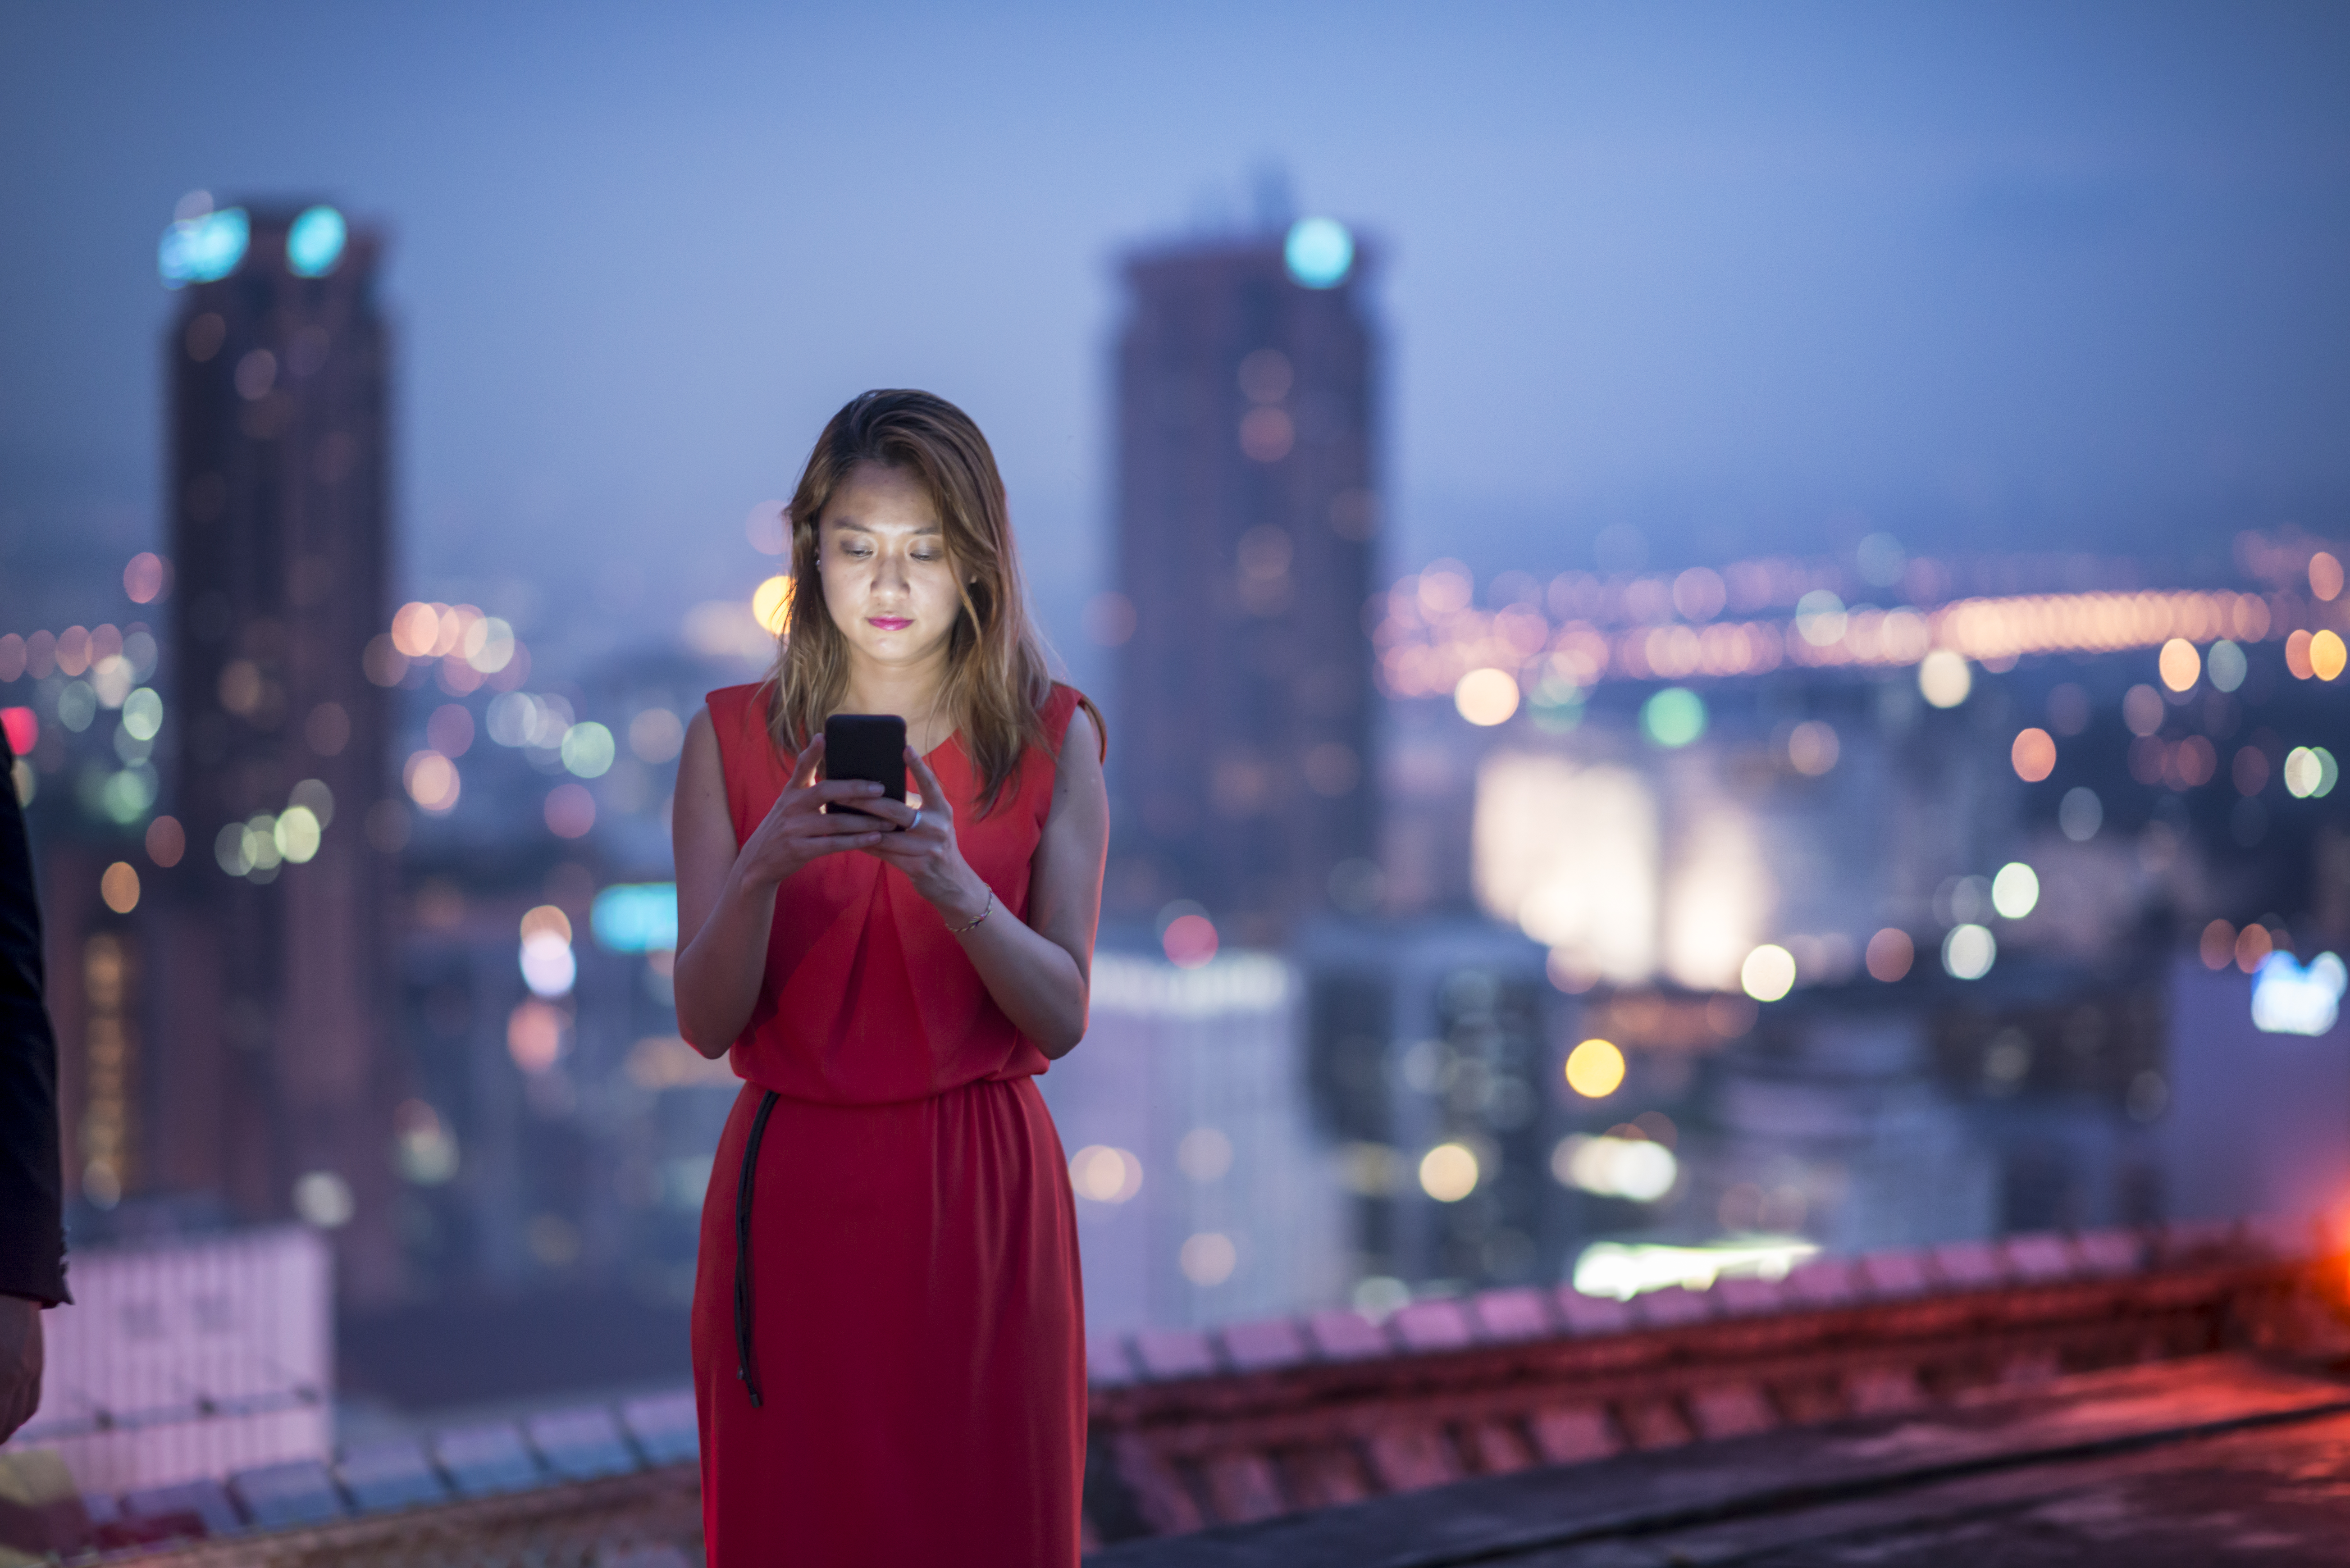 woman-holding-phone-in-usage-30s-cityscape